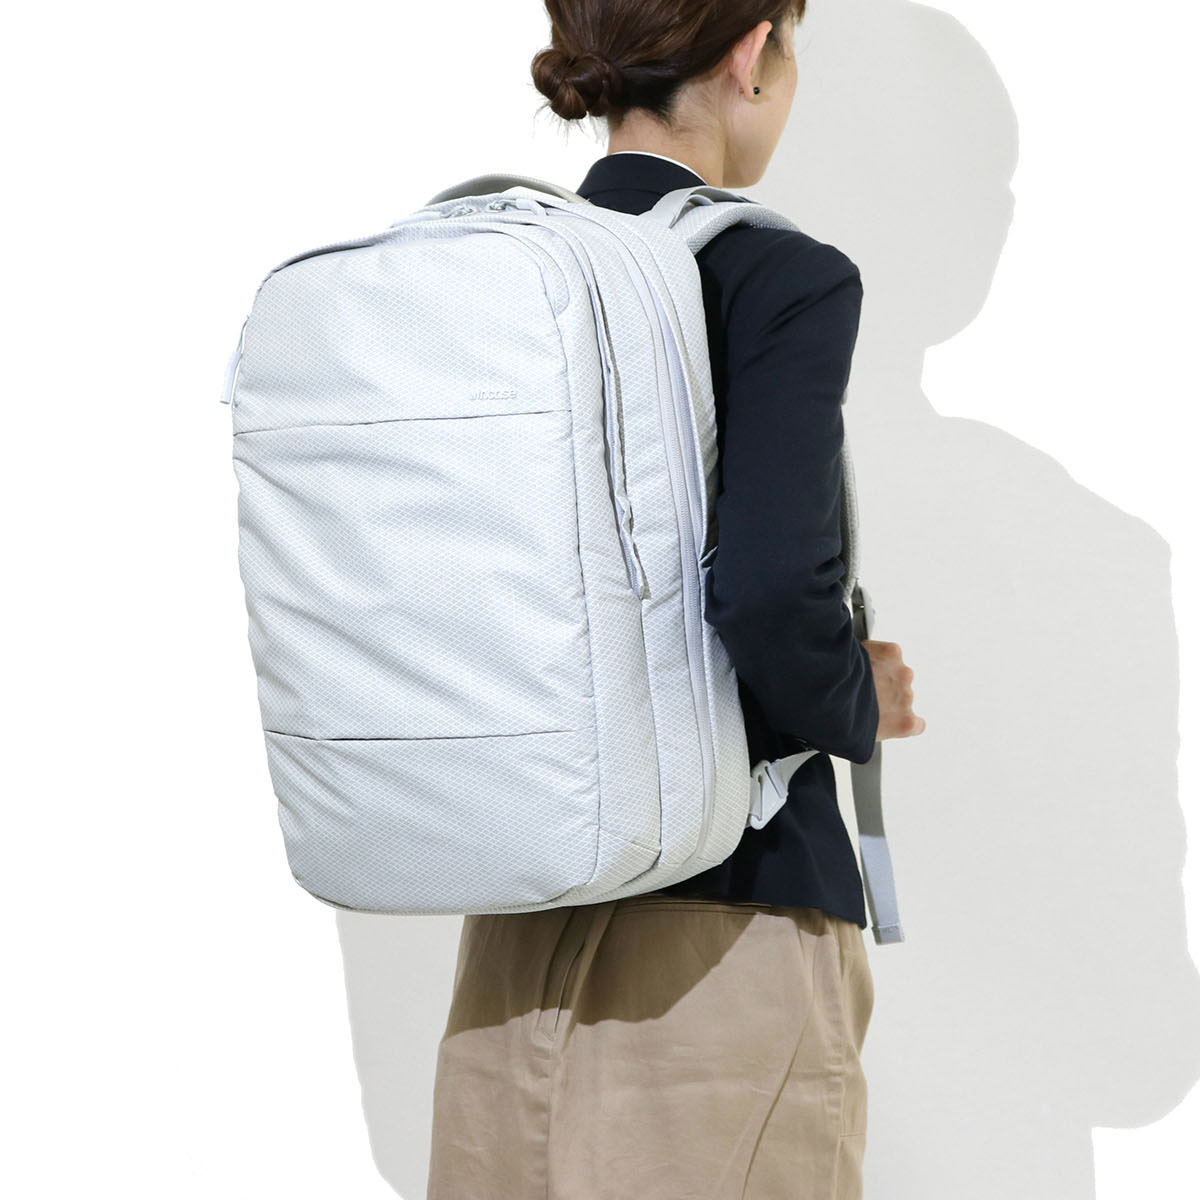 3e46f5b0ad6c Incase Backpack City Commuter Pack 2 15 inch PC storage laptop men s ladies  commute to school 37181009 37181010